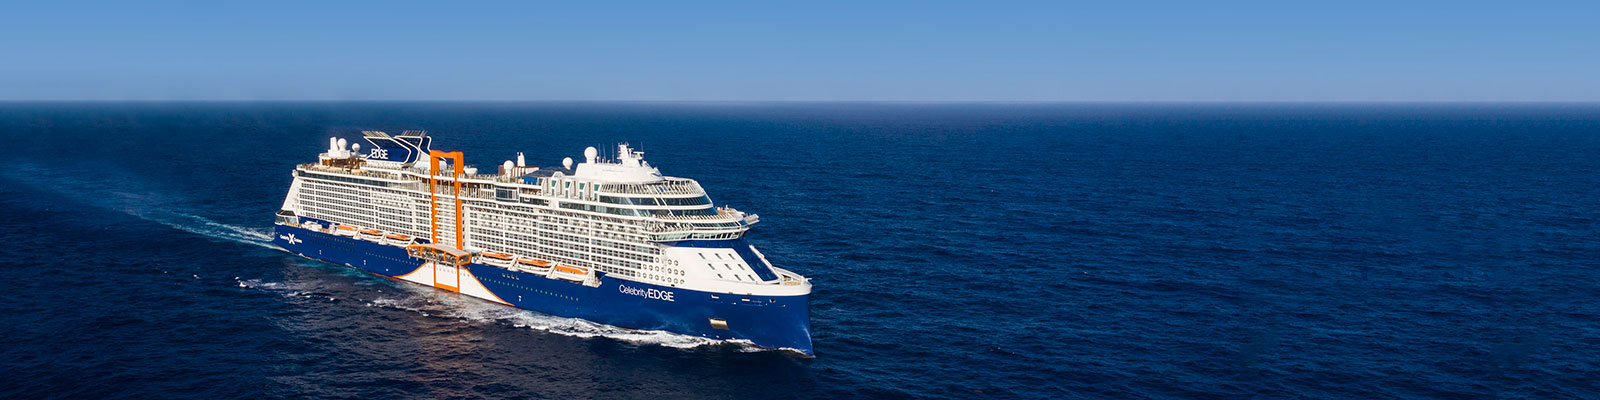 Celebrity Edge (image courtesy of Celebrity Cruises)